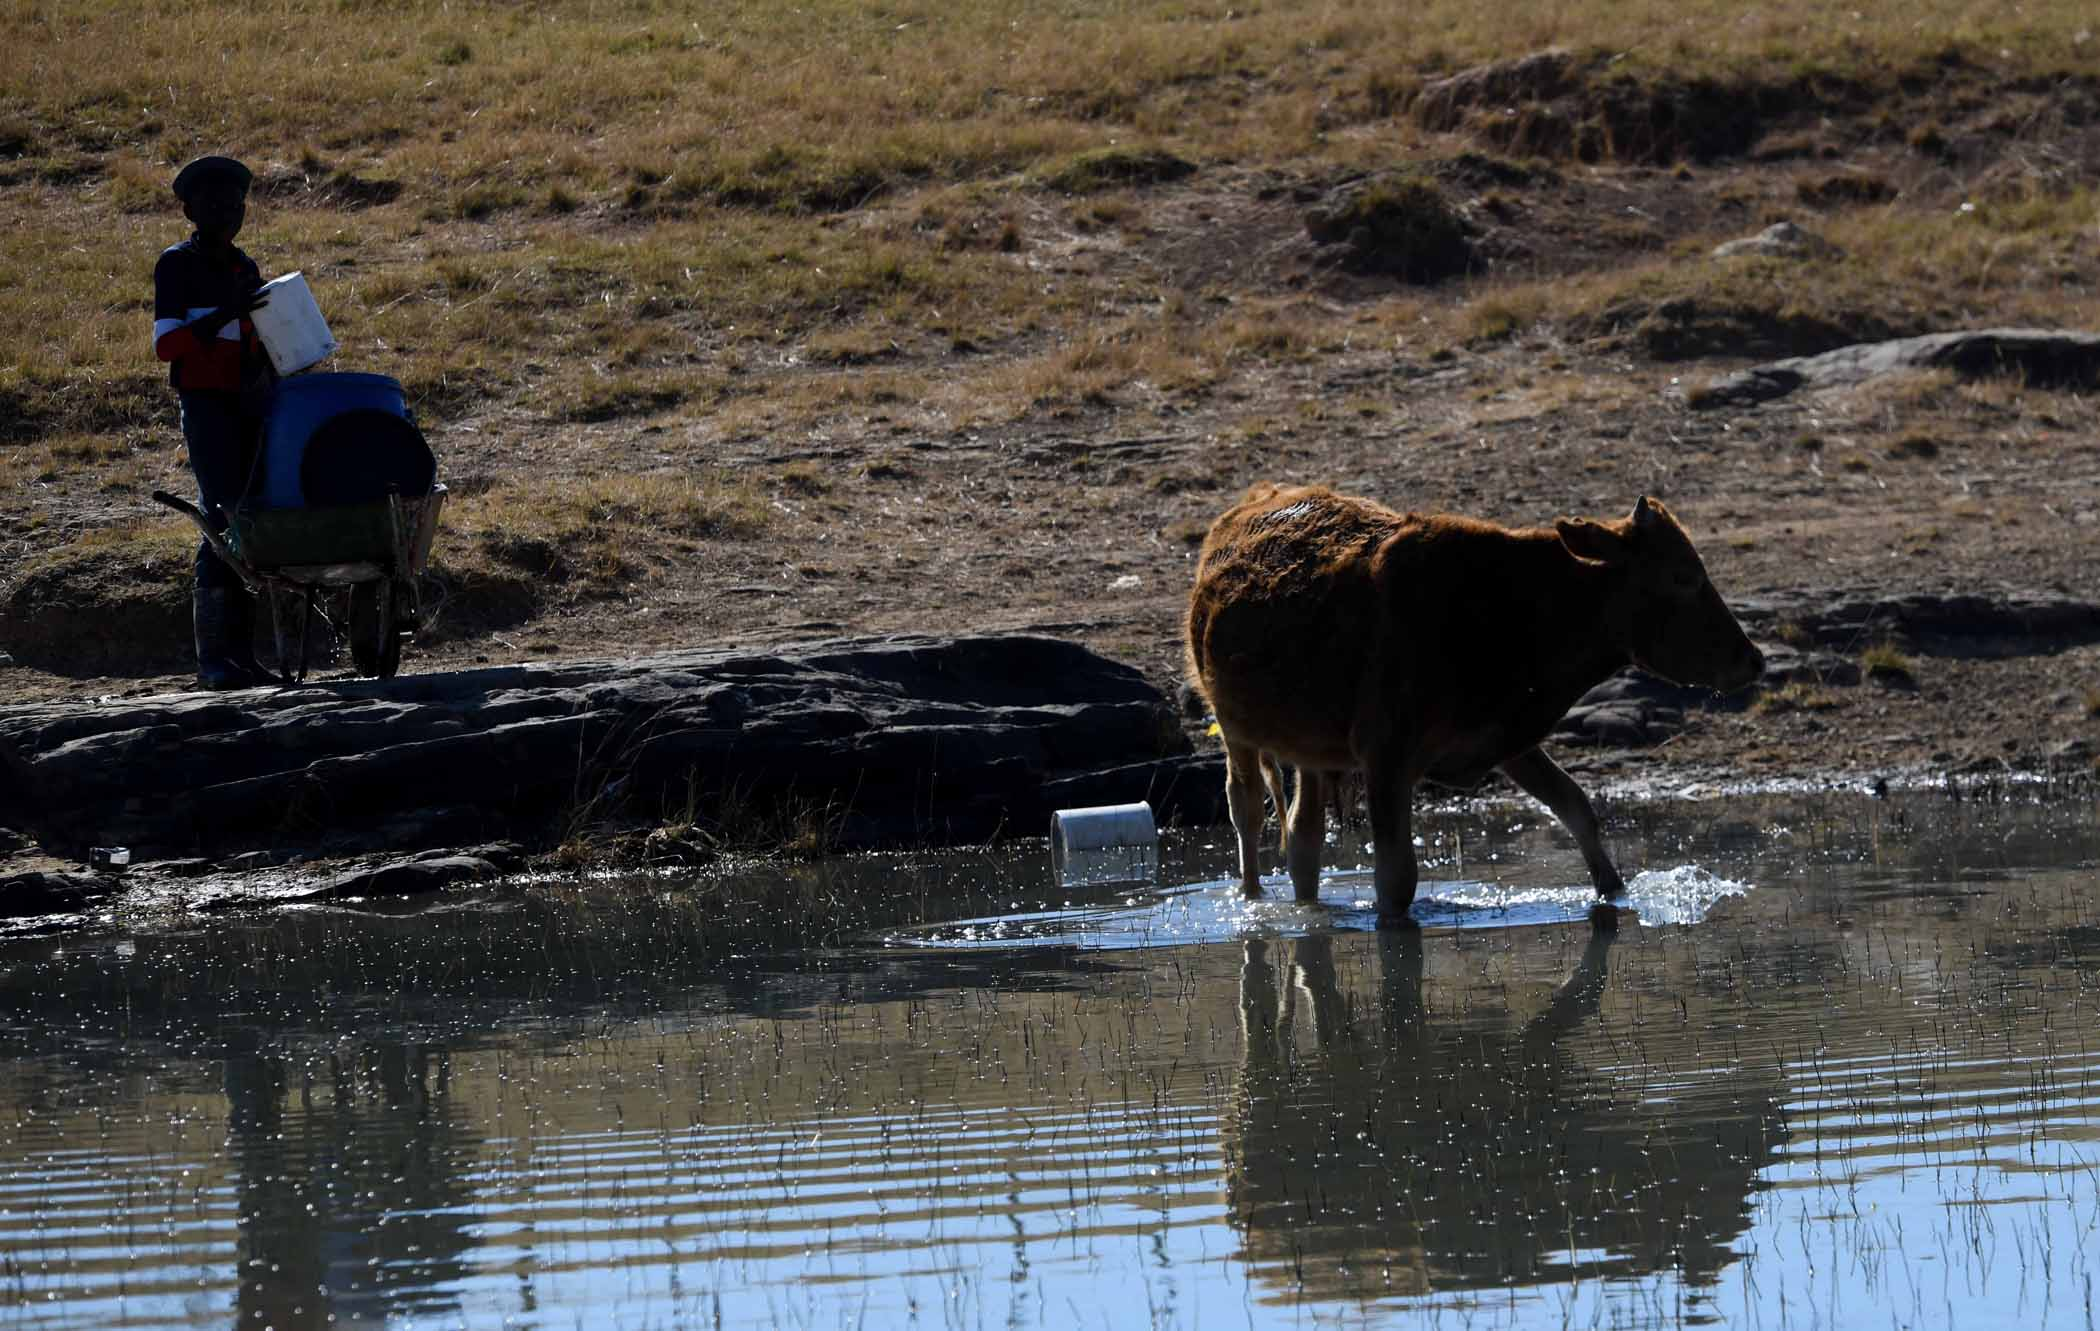 Inadequate water infrastructure and unreliable services to rural communities in the Eastern Cape, mean many people and livestock share the same open water source. PHOTO: Black Star/Spotlight